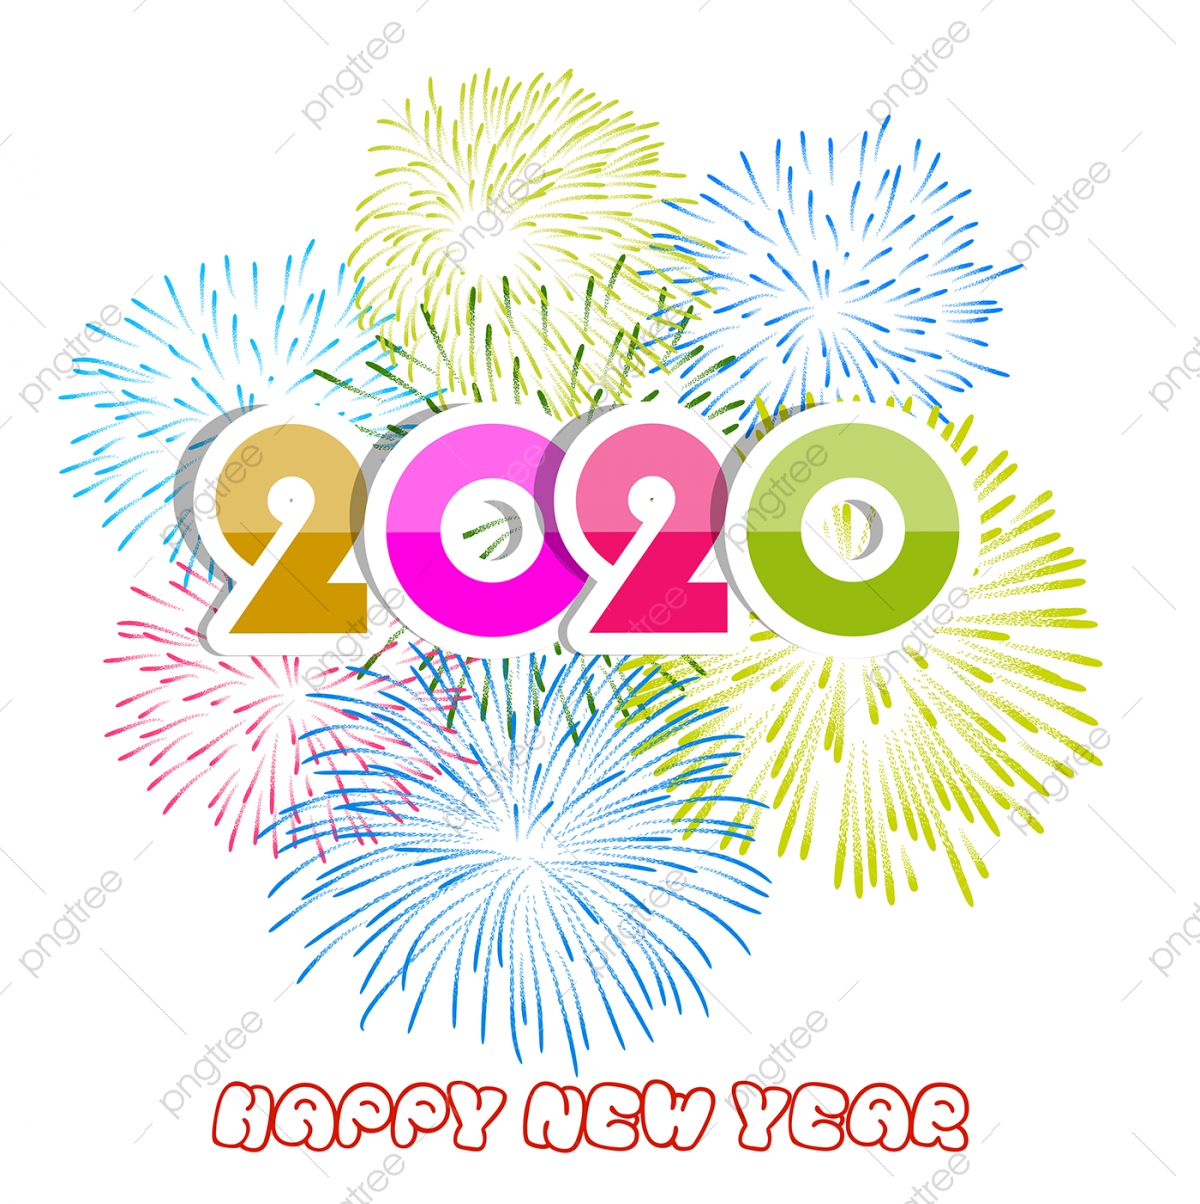 new year png vector psd and clipart with transparent background for free download pngtree https pngtree com freepng happy new year 2020 background with fireworks 3713320 html